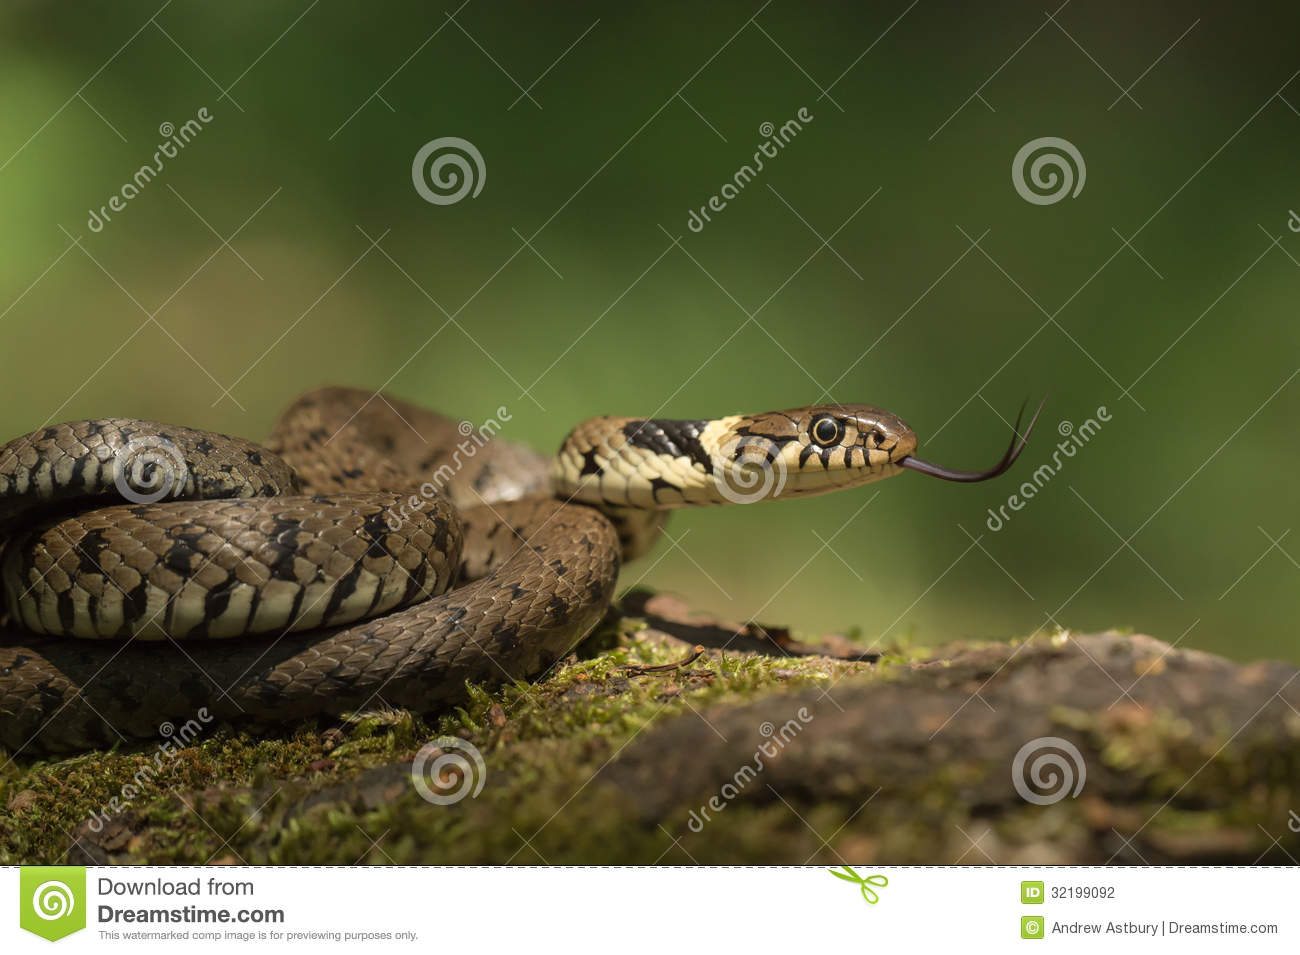 Difference between male and female snakes-9649